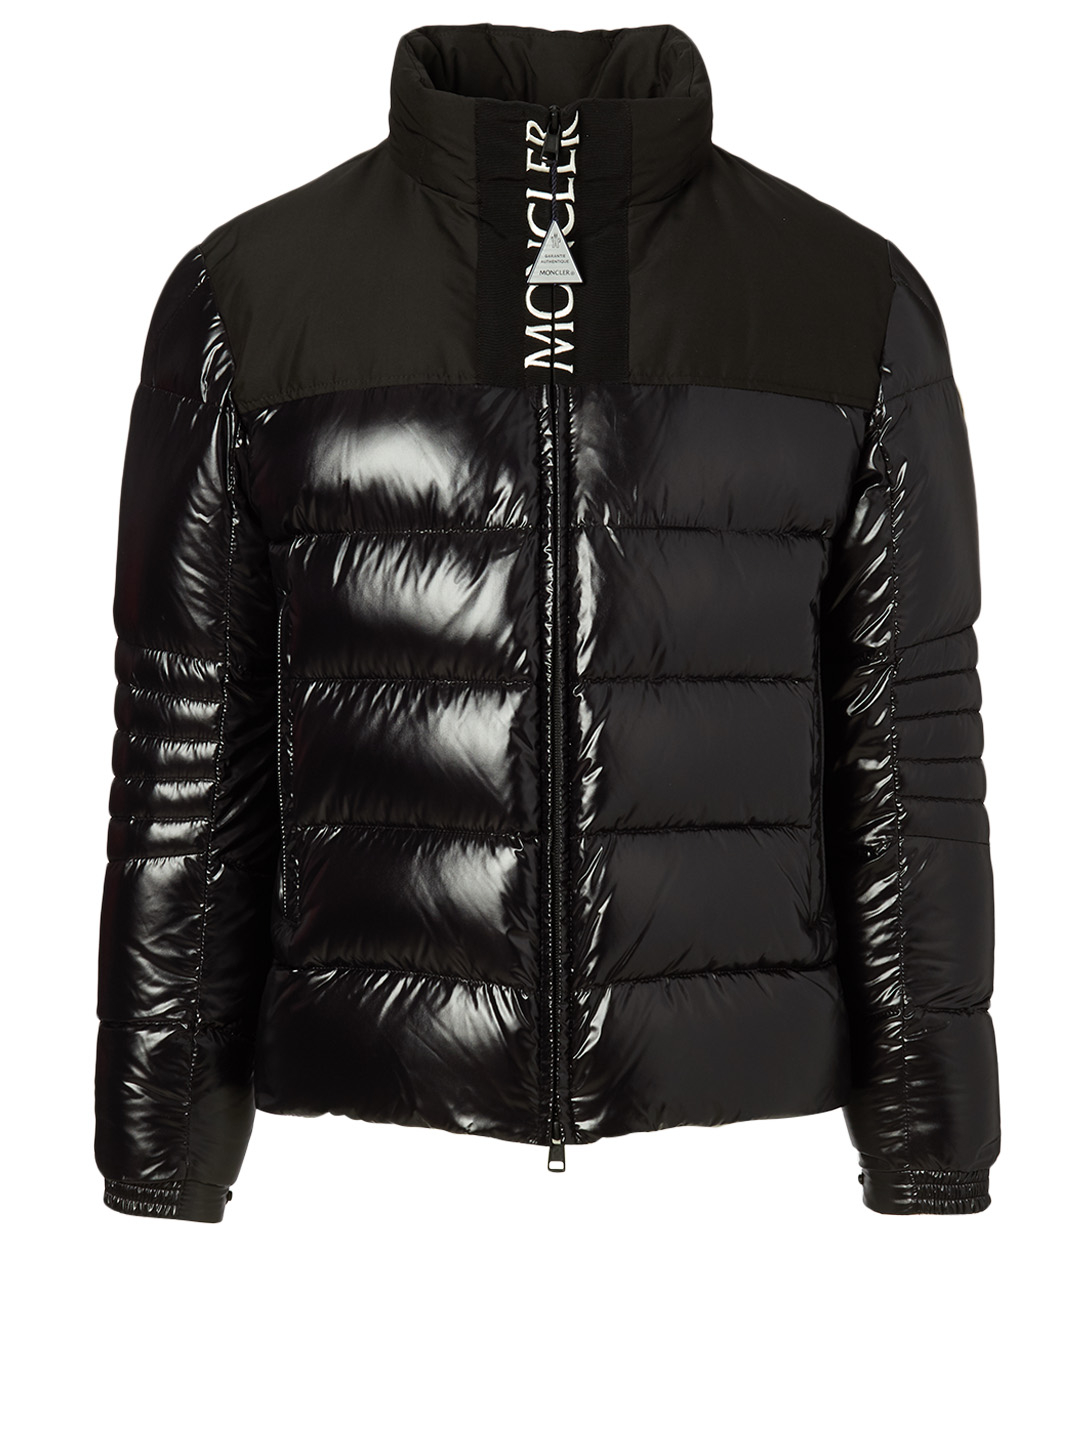 MONCLER Bruel Down Jacket Men's Black